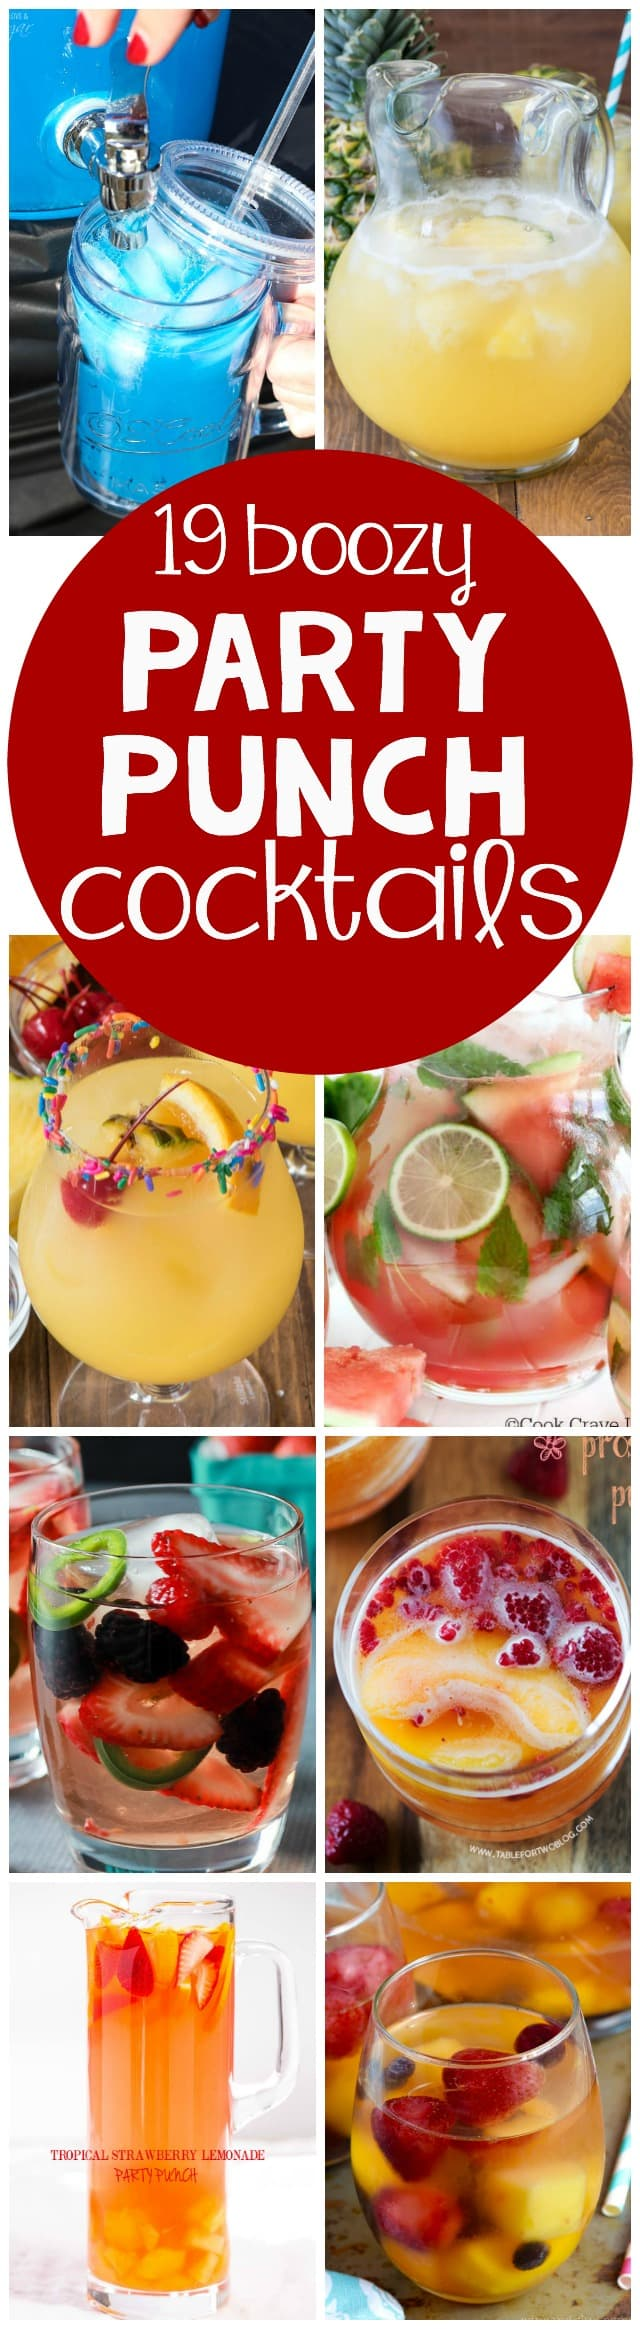 19 Party Punch Cocktail Recipes Crazy For Crust